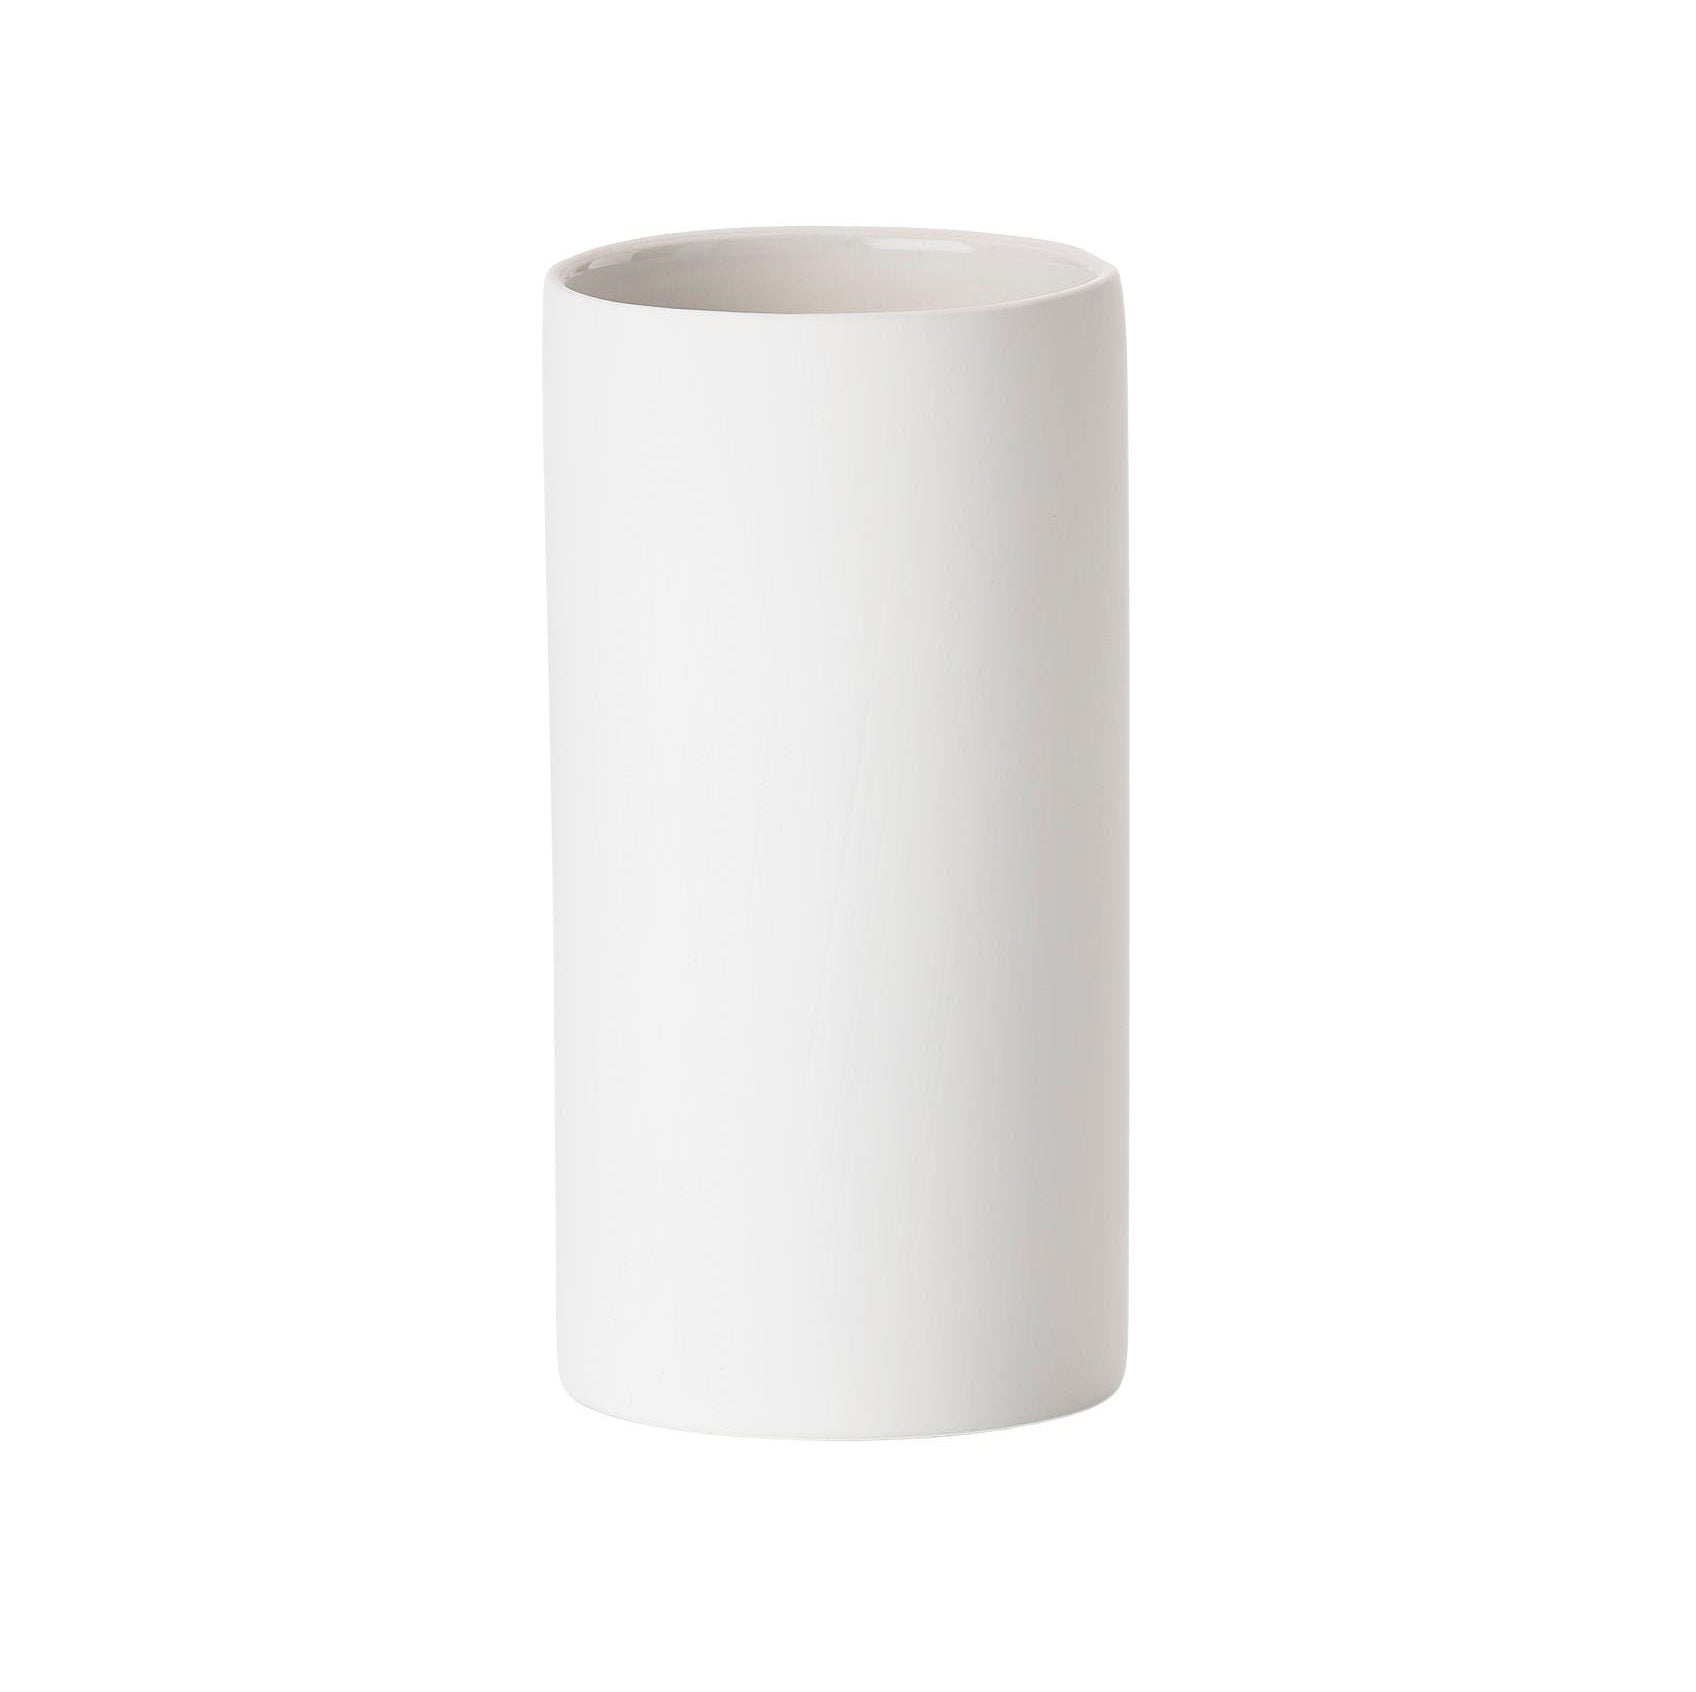 Solo Toothbrush Holder- White